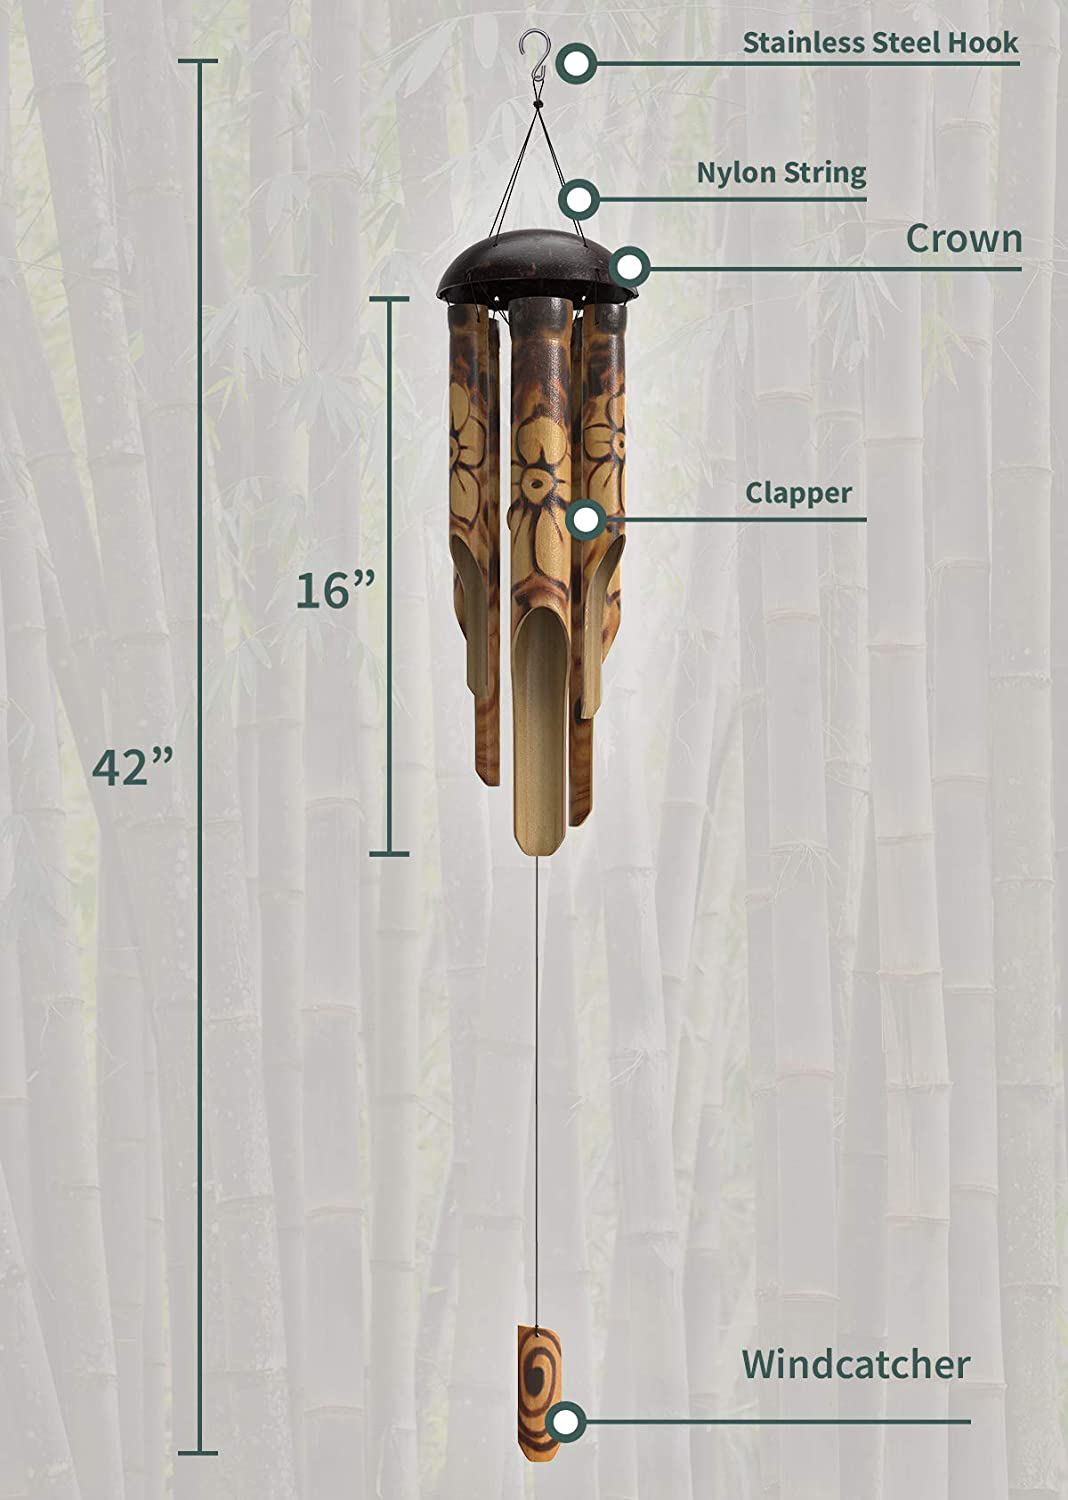 "Nalulu Rustic Bamboo Wind Chime - Outdoor Wood Wooden Floral Burned Design with Coconut Crown, 42"" Large & Relaxation Ready"